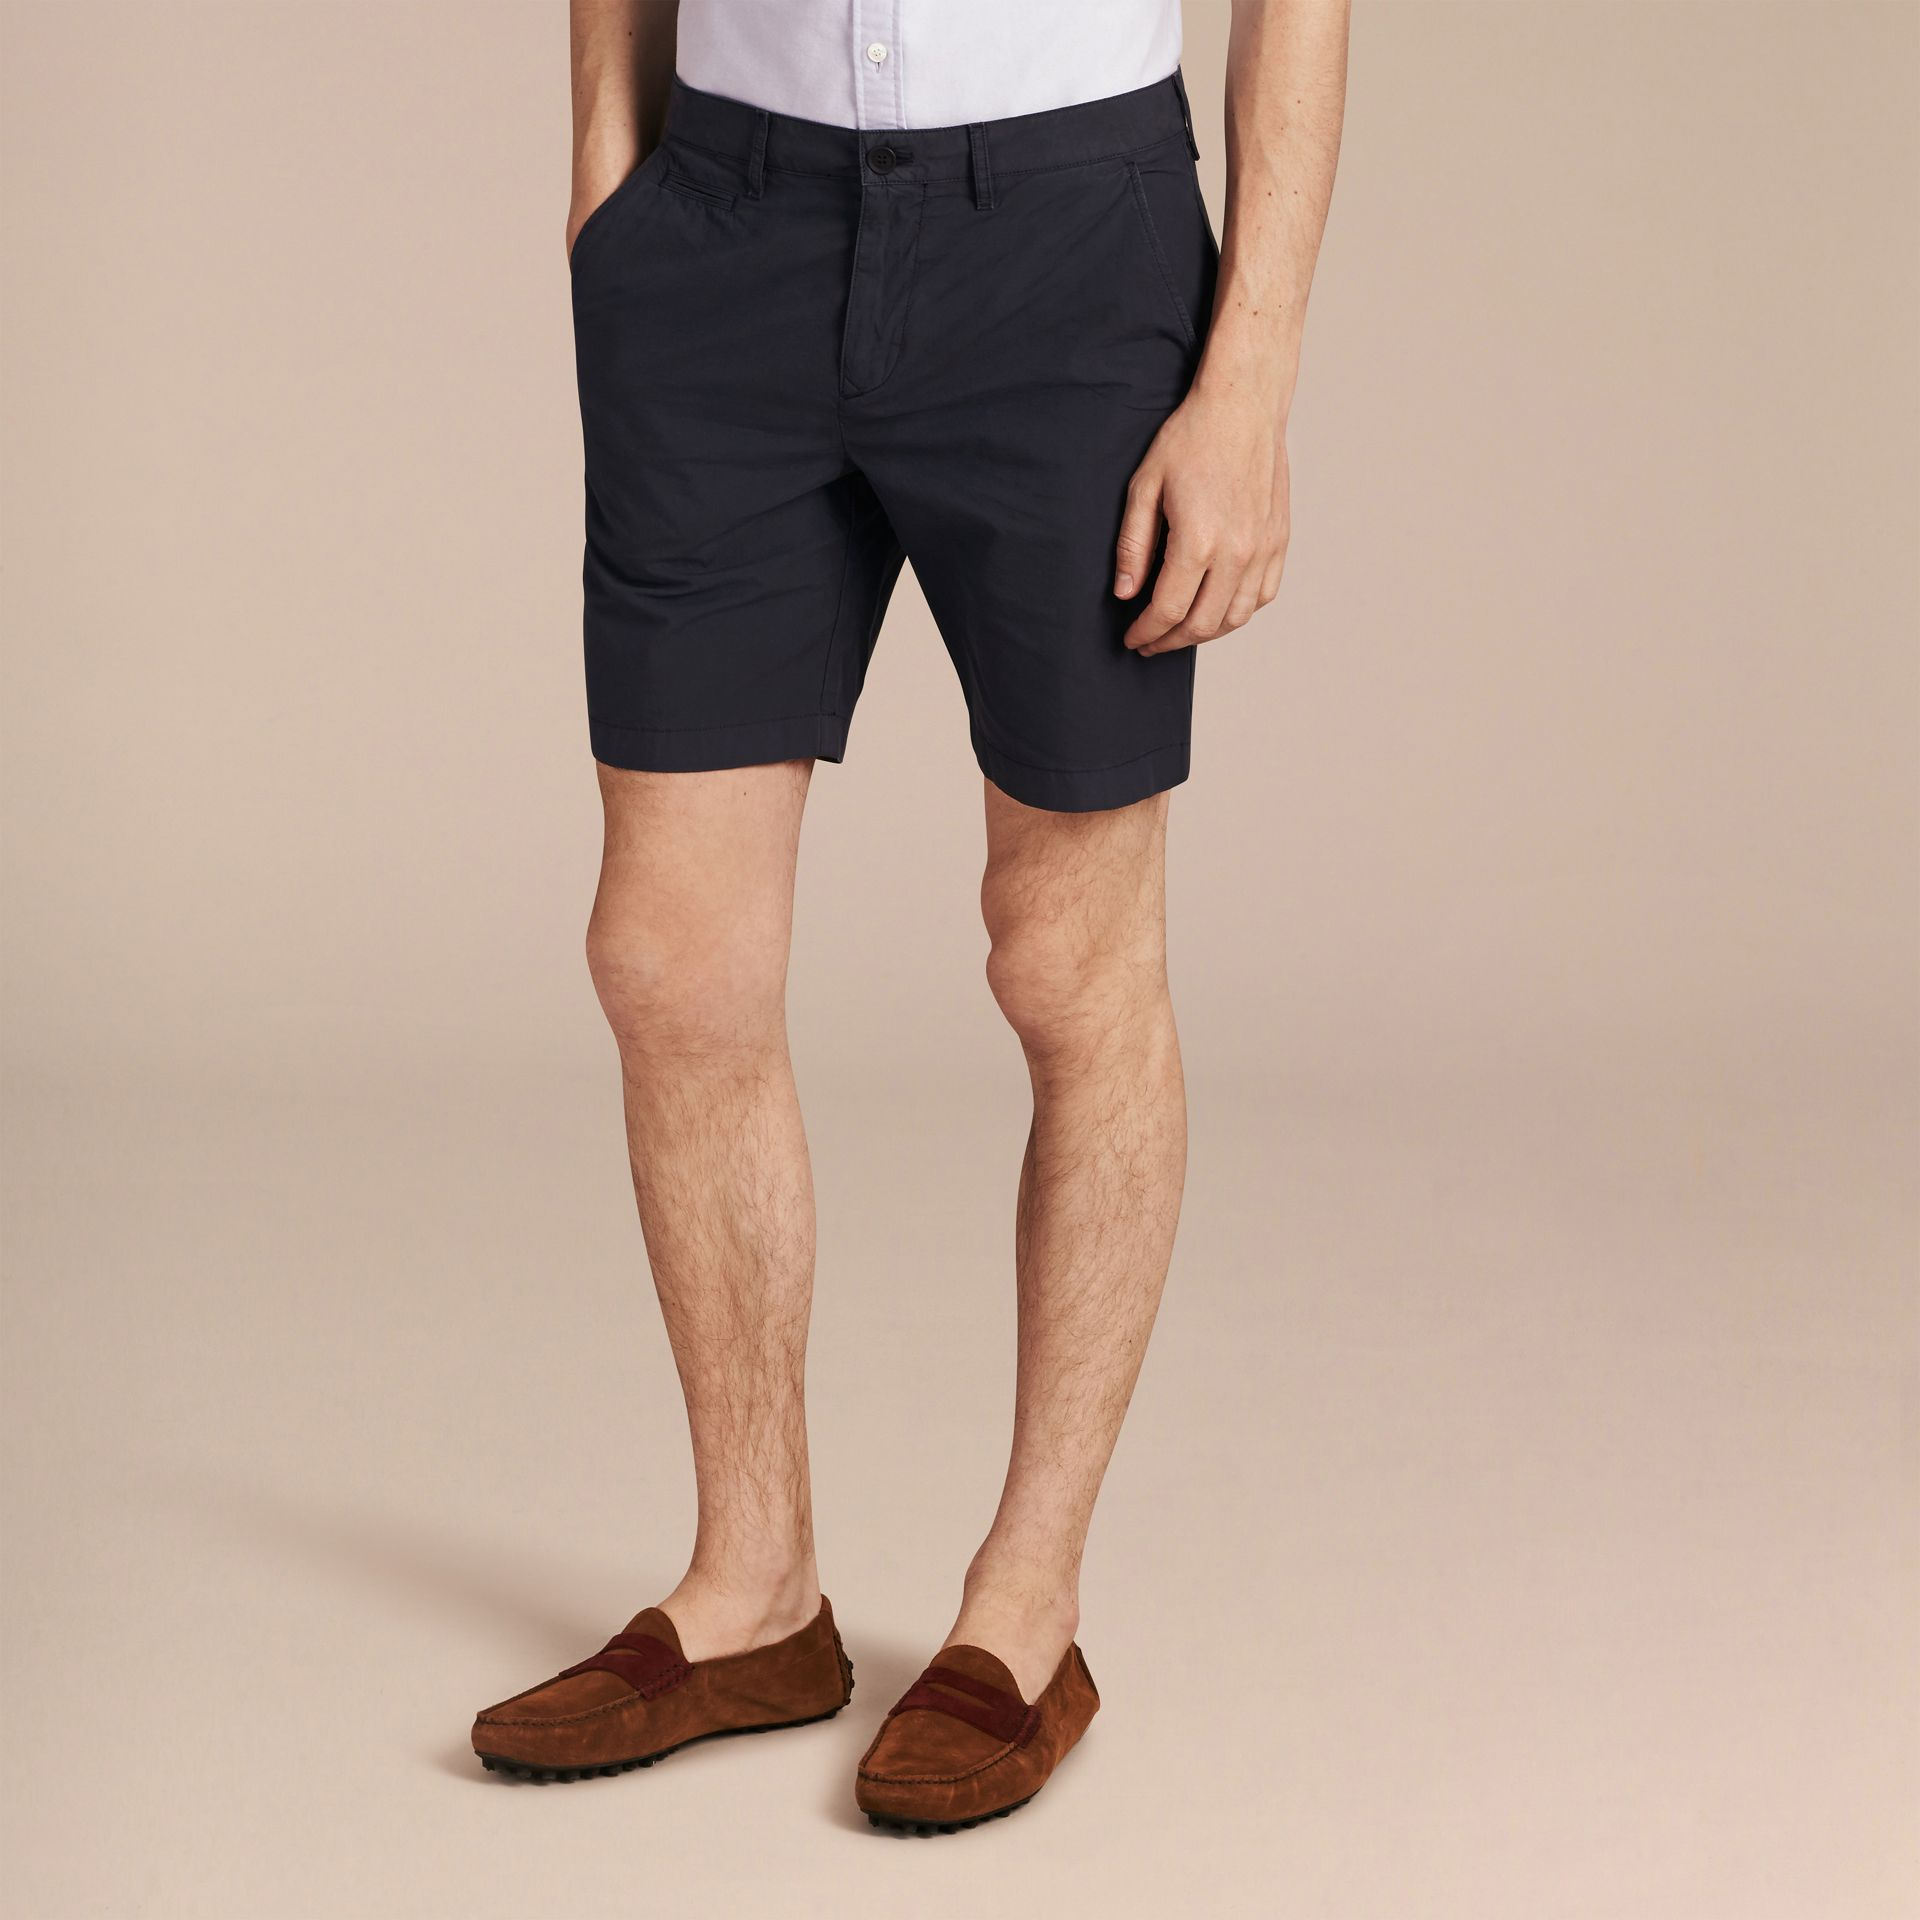 Cotton Poplin Chino Shorts in Indigo - Men | Burberry - gallery image 6